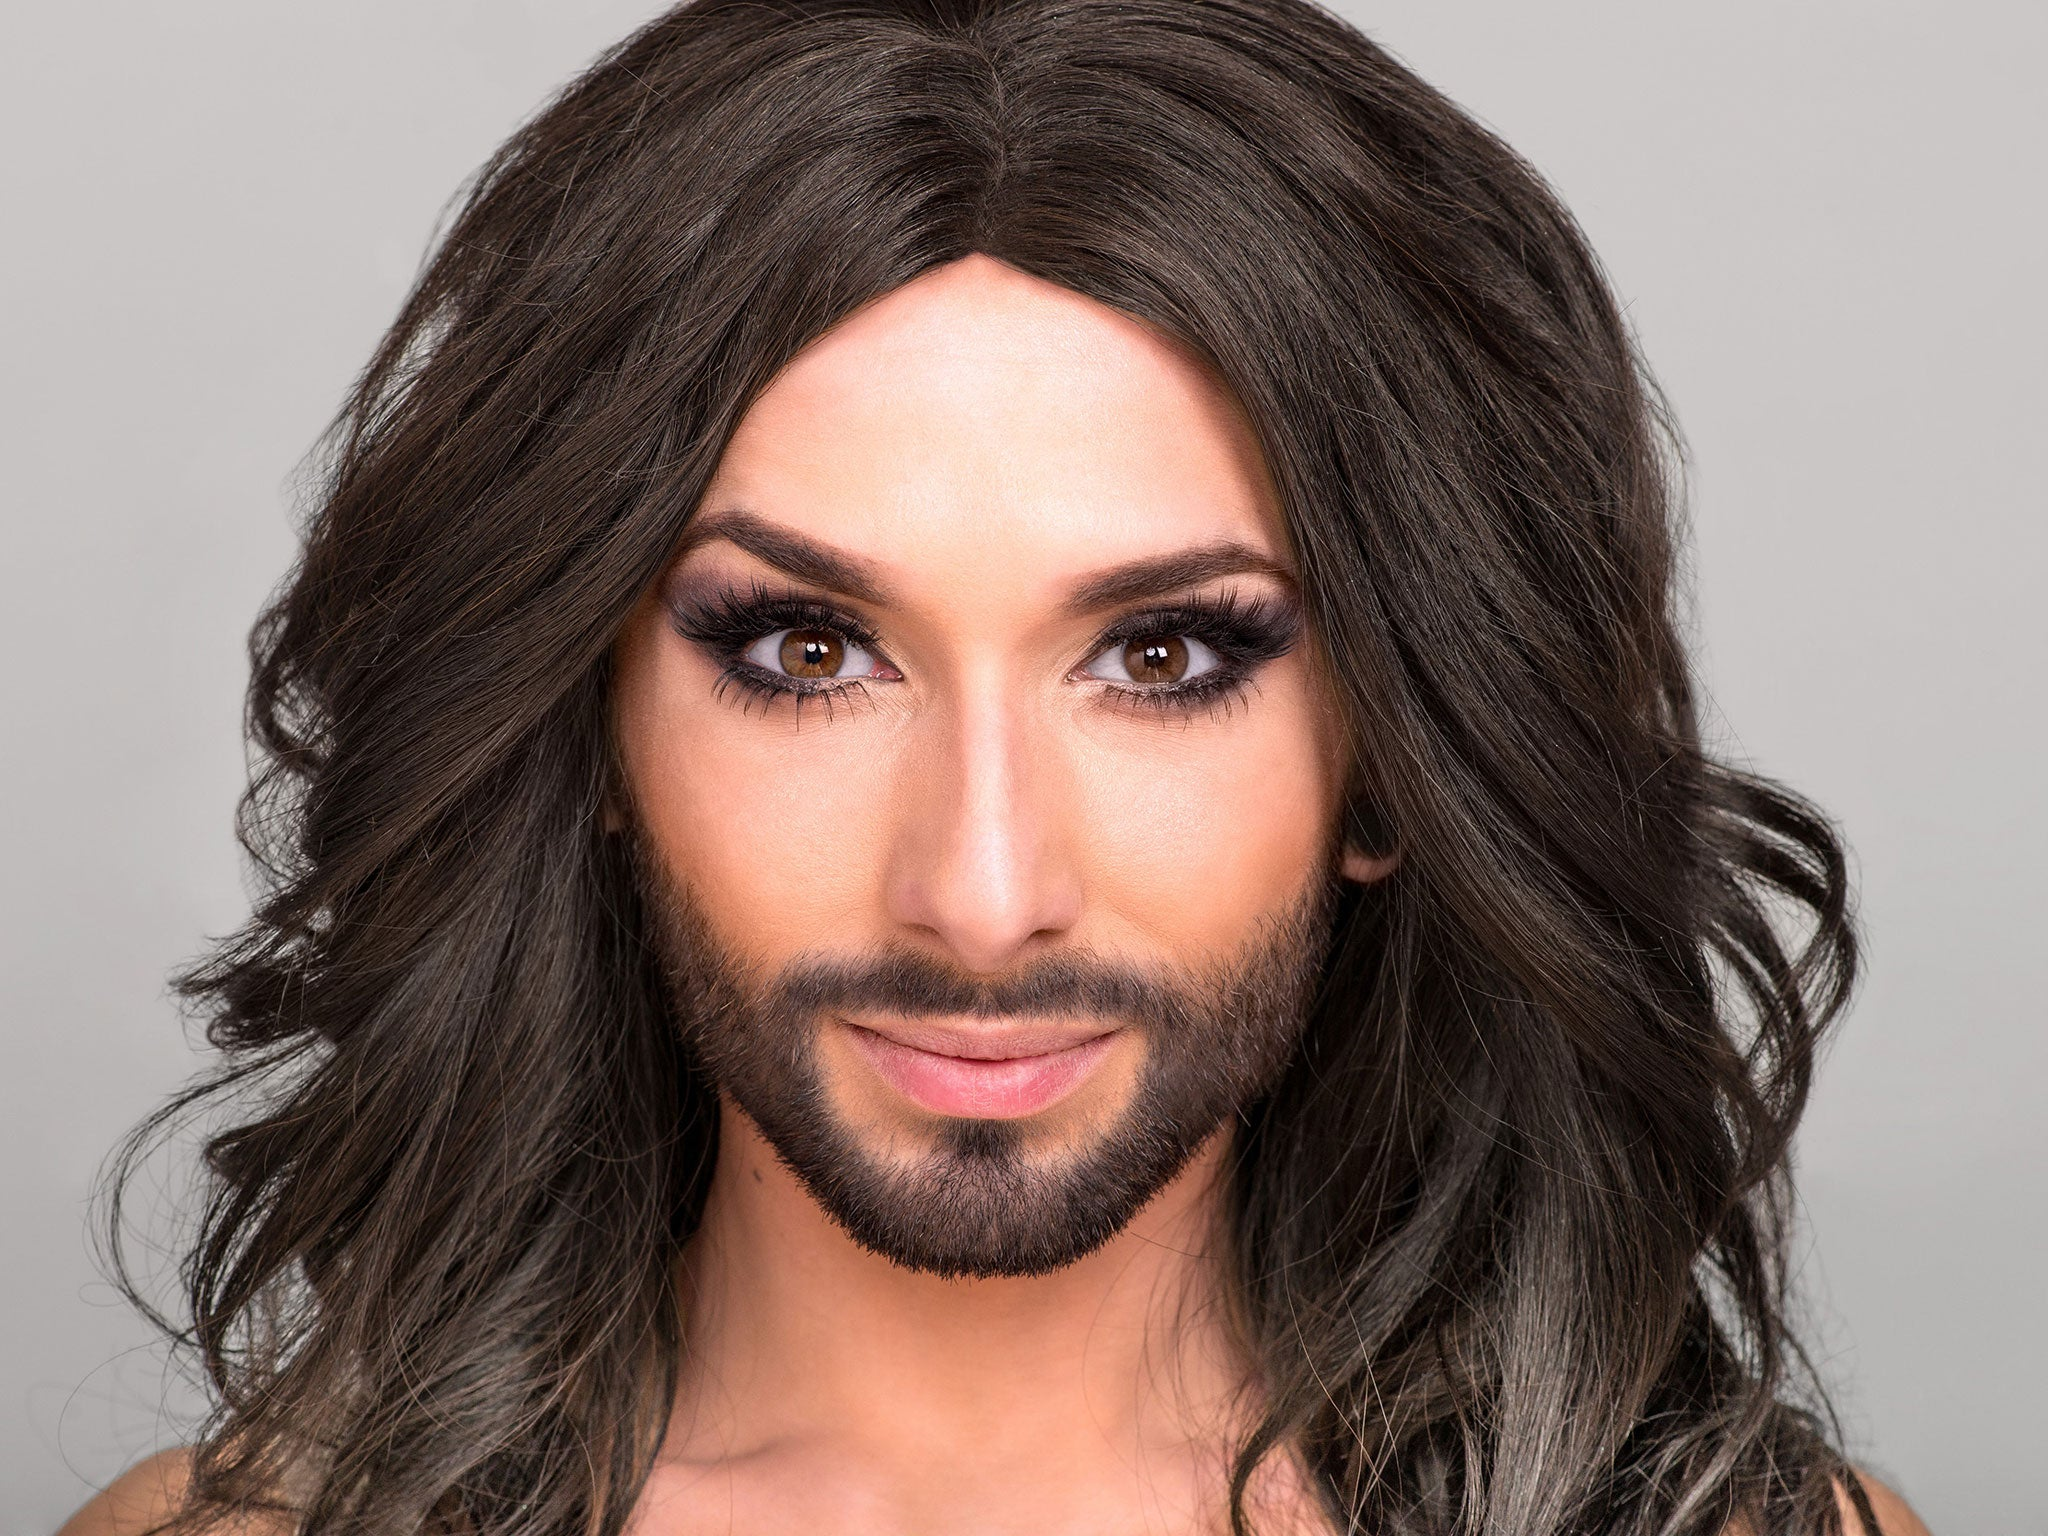 Conchita wurst and dana international in eurovision first star - Eurovision 2014 Conchita Wurst Faces Transphobic Backlash For Unnatural Lifestyle The Independent